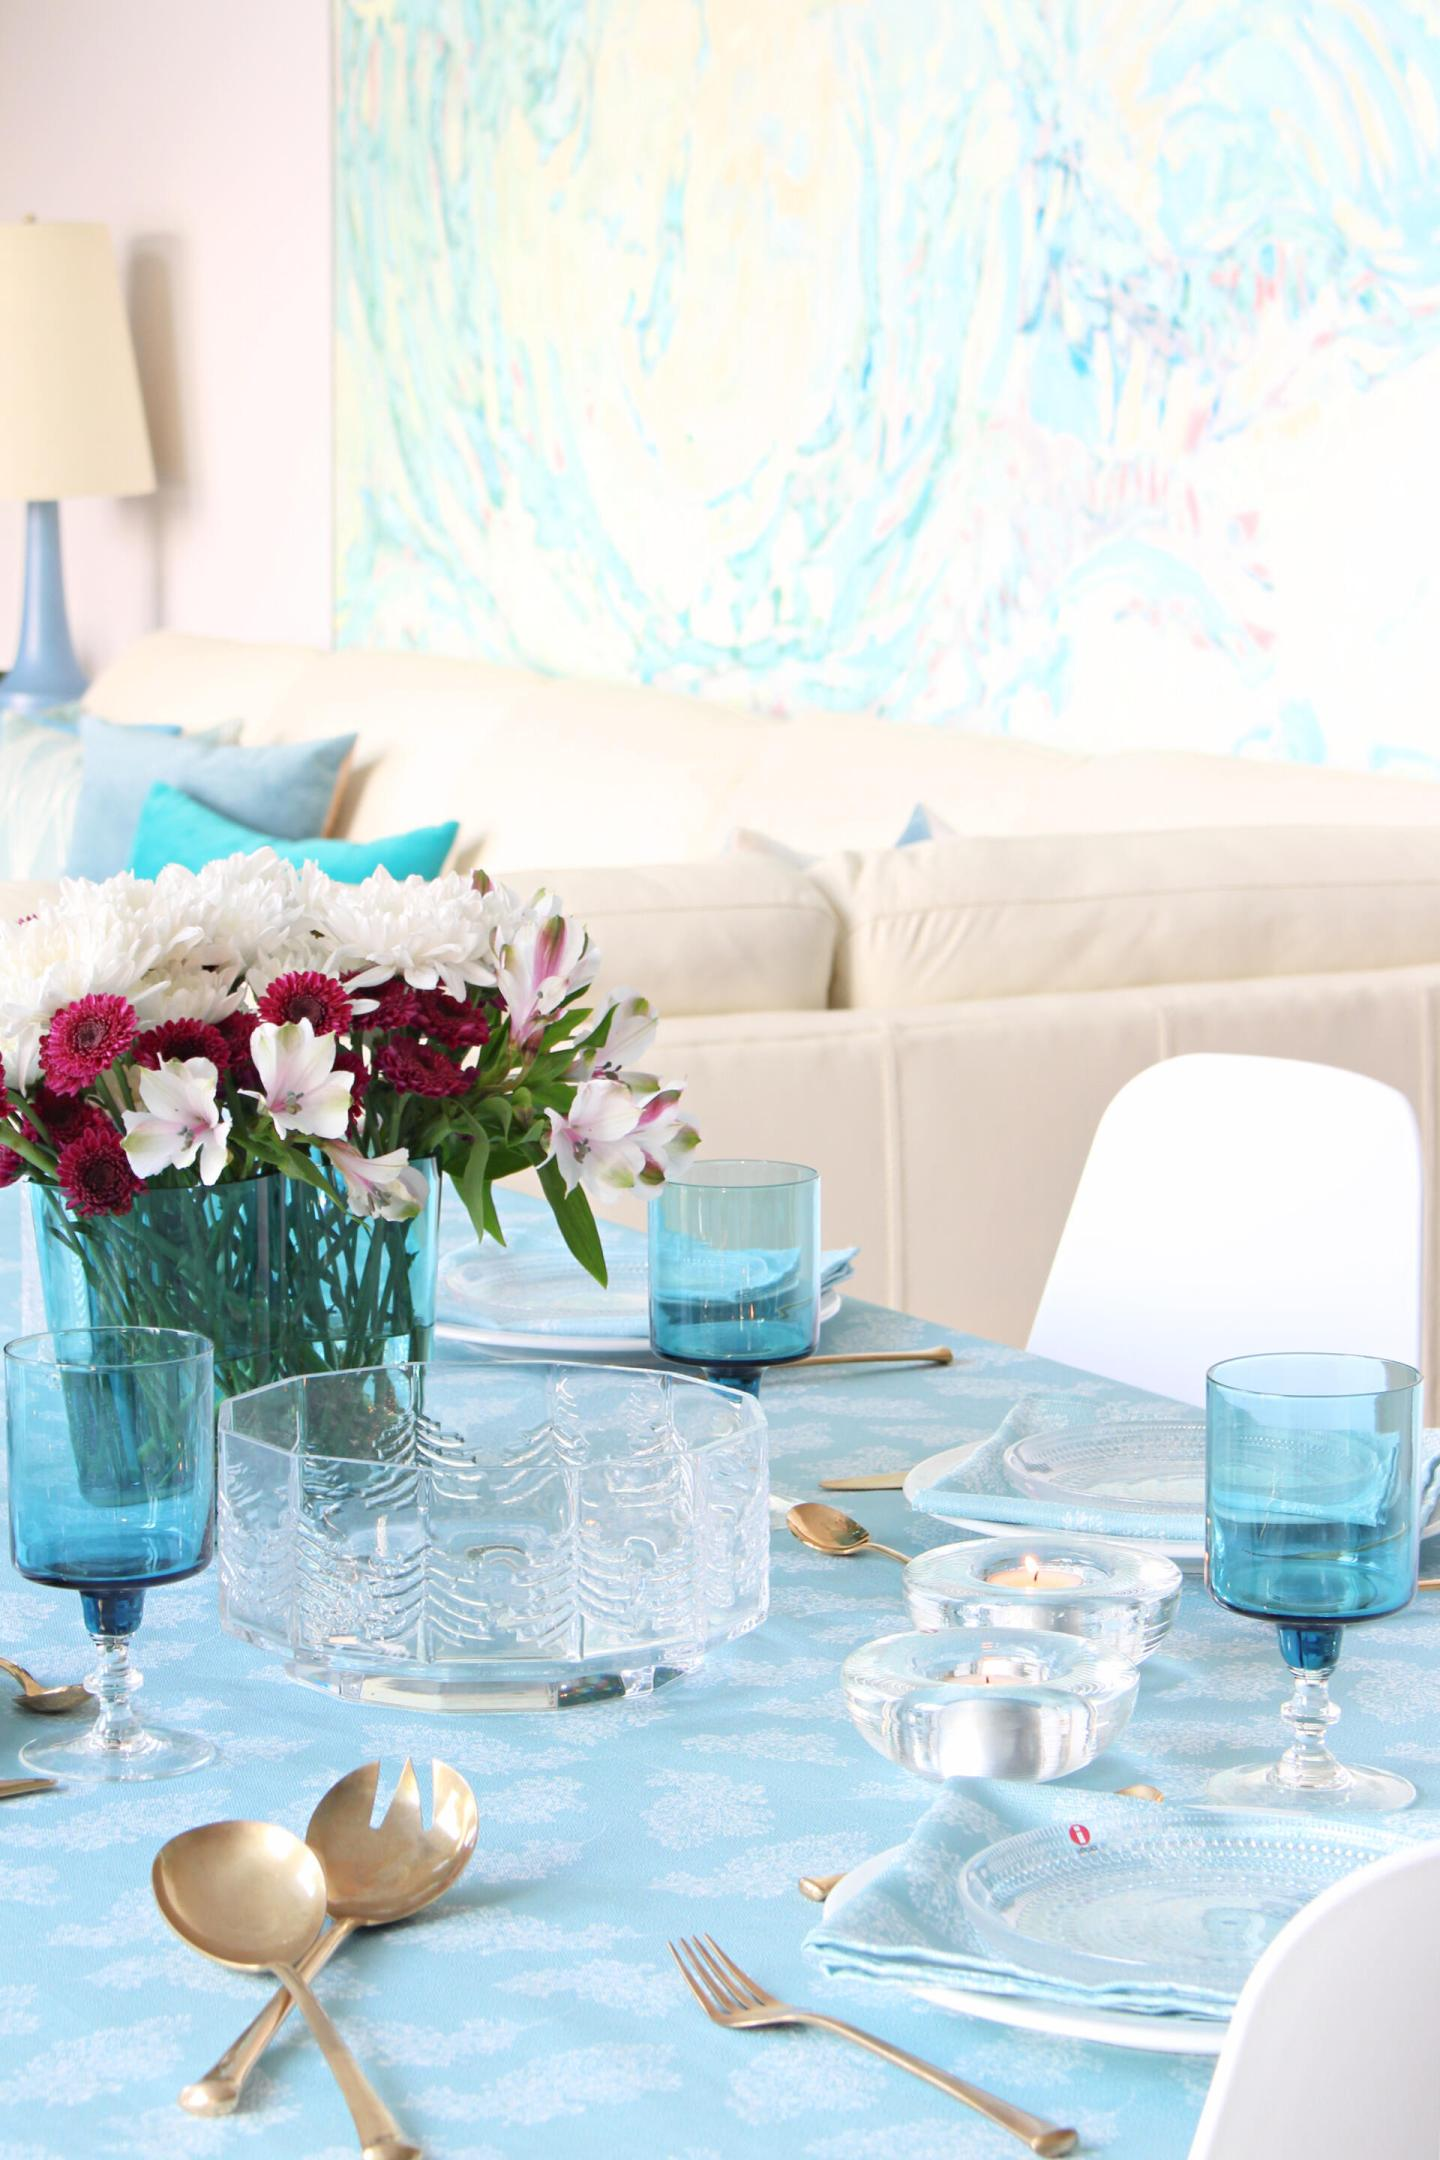 Summer Tablescape with Loom & Table